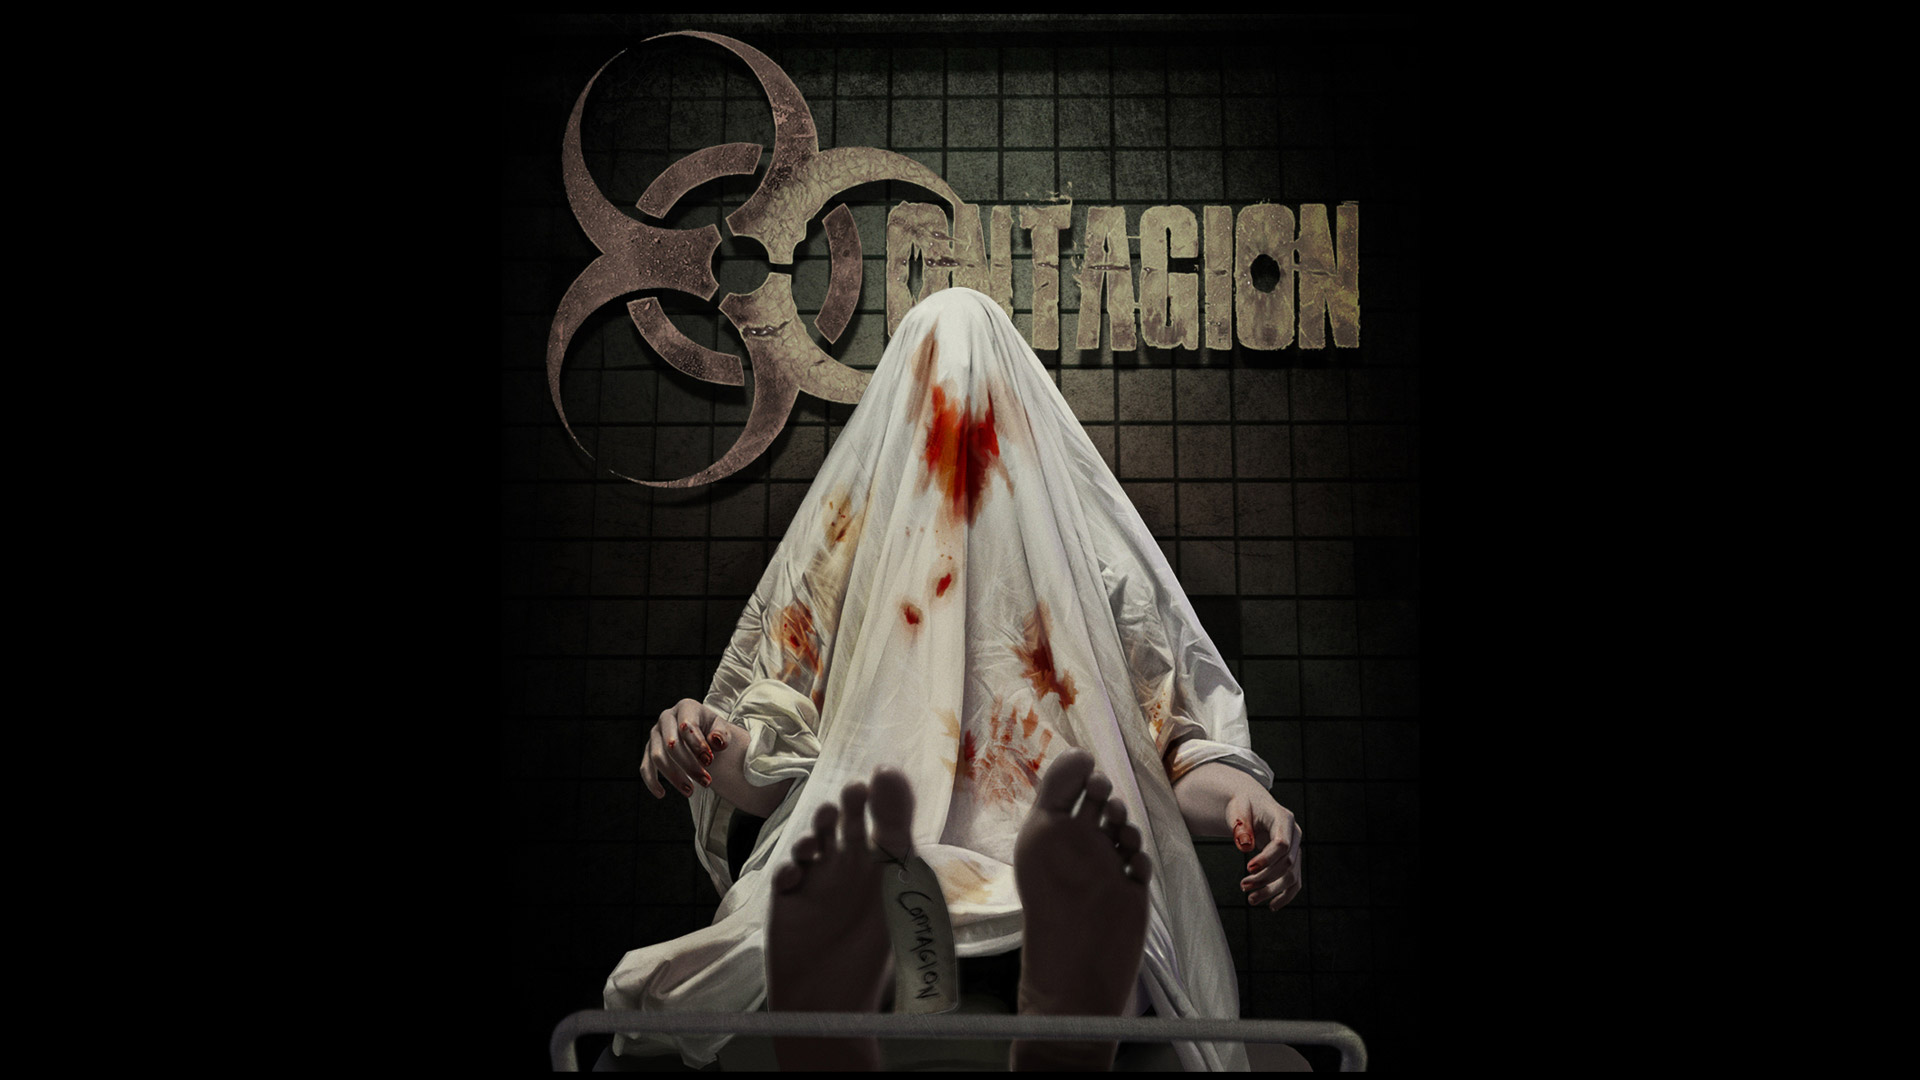 Free Contagion Wallpaper in 1920x1080